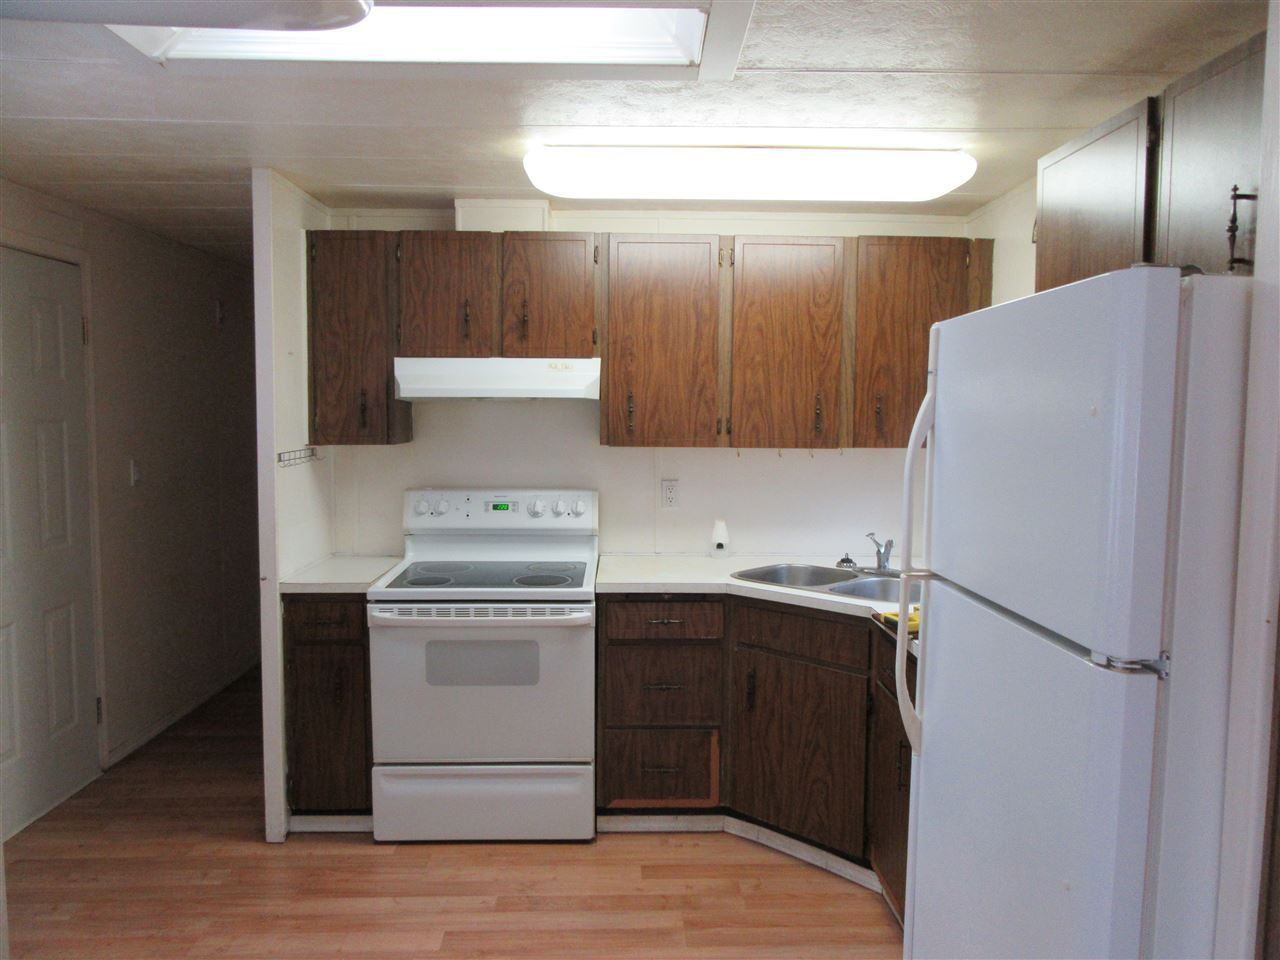 Main Photo: 3 4200 DEWDNEY TRUNK Road in Coquitlam: Ranch Park Manufactured Home for sale : MLS®# R2030232